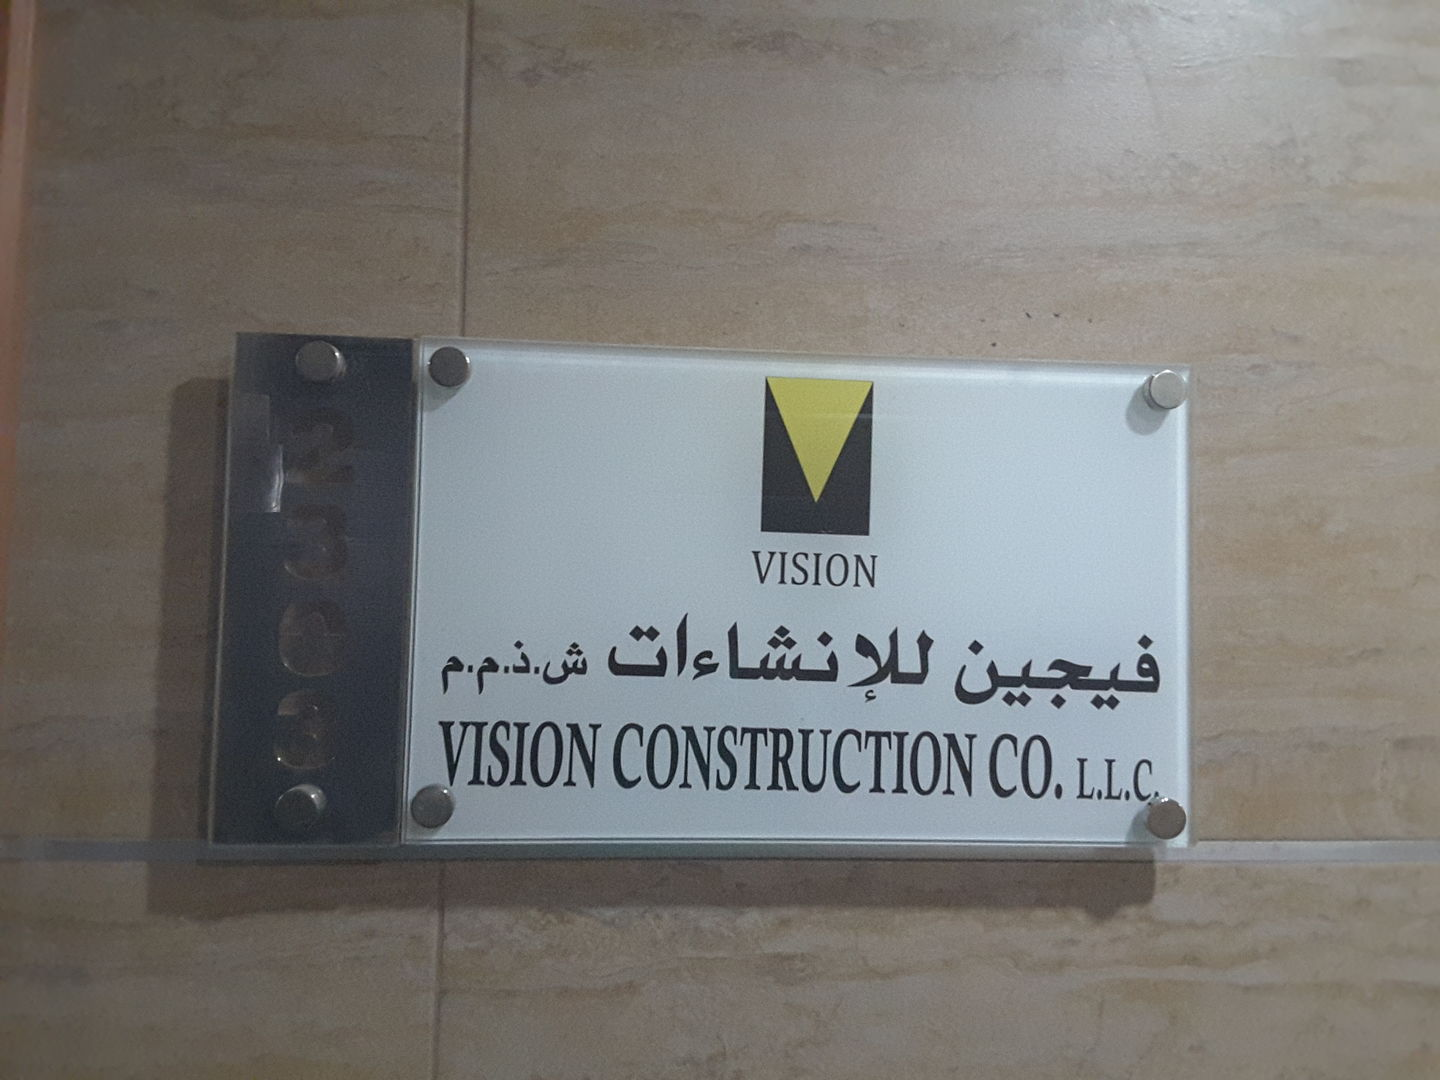 HiDubai-business-vision-construction-construction-heavy-industries-construction-renovation-dubai-silicon-oasis-nadd-hessa-dubai-2